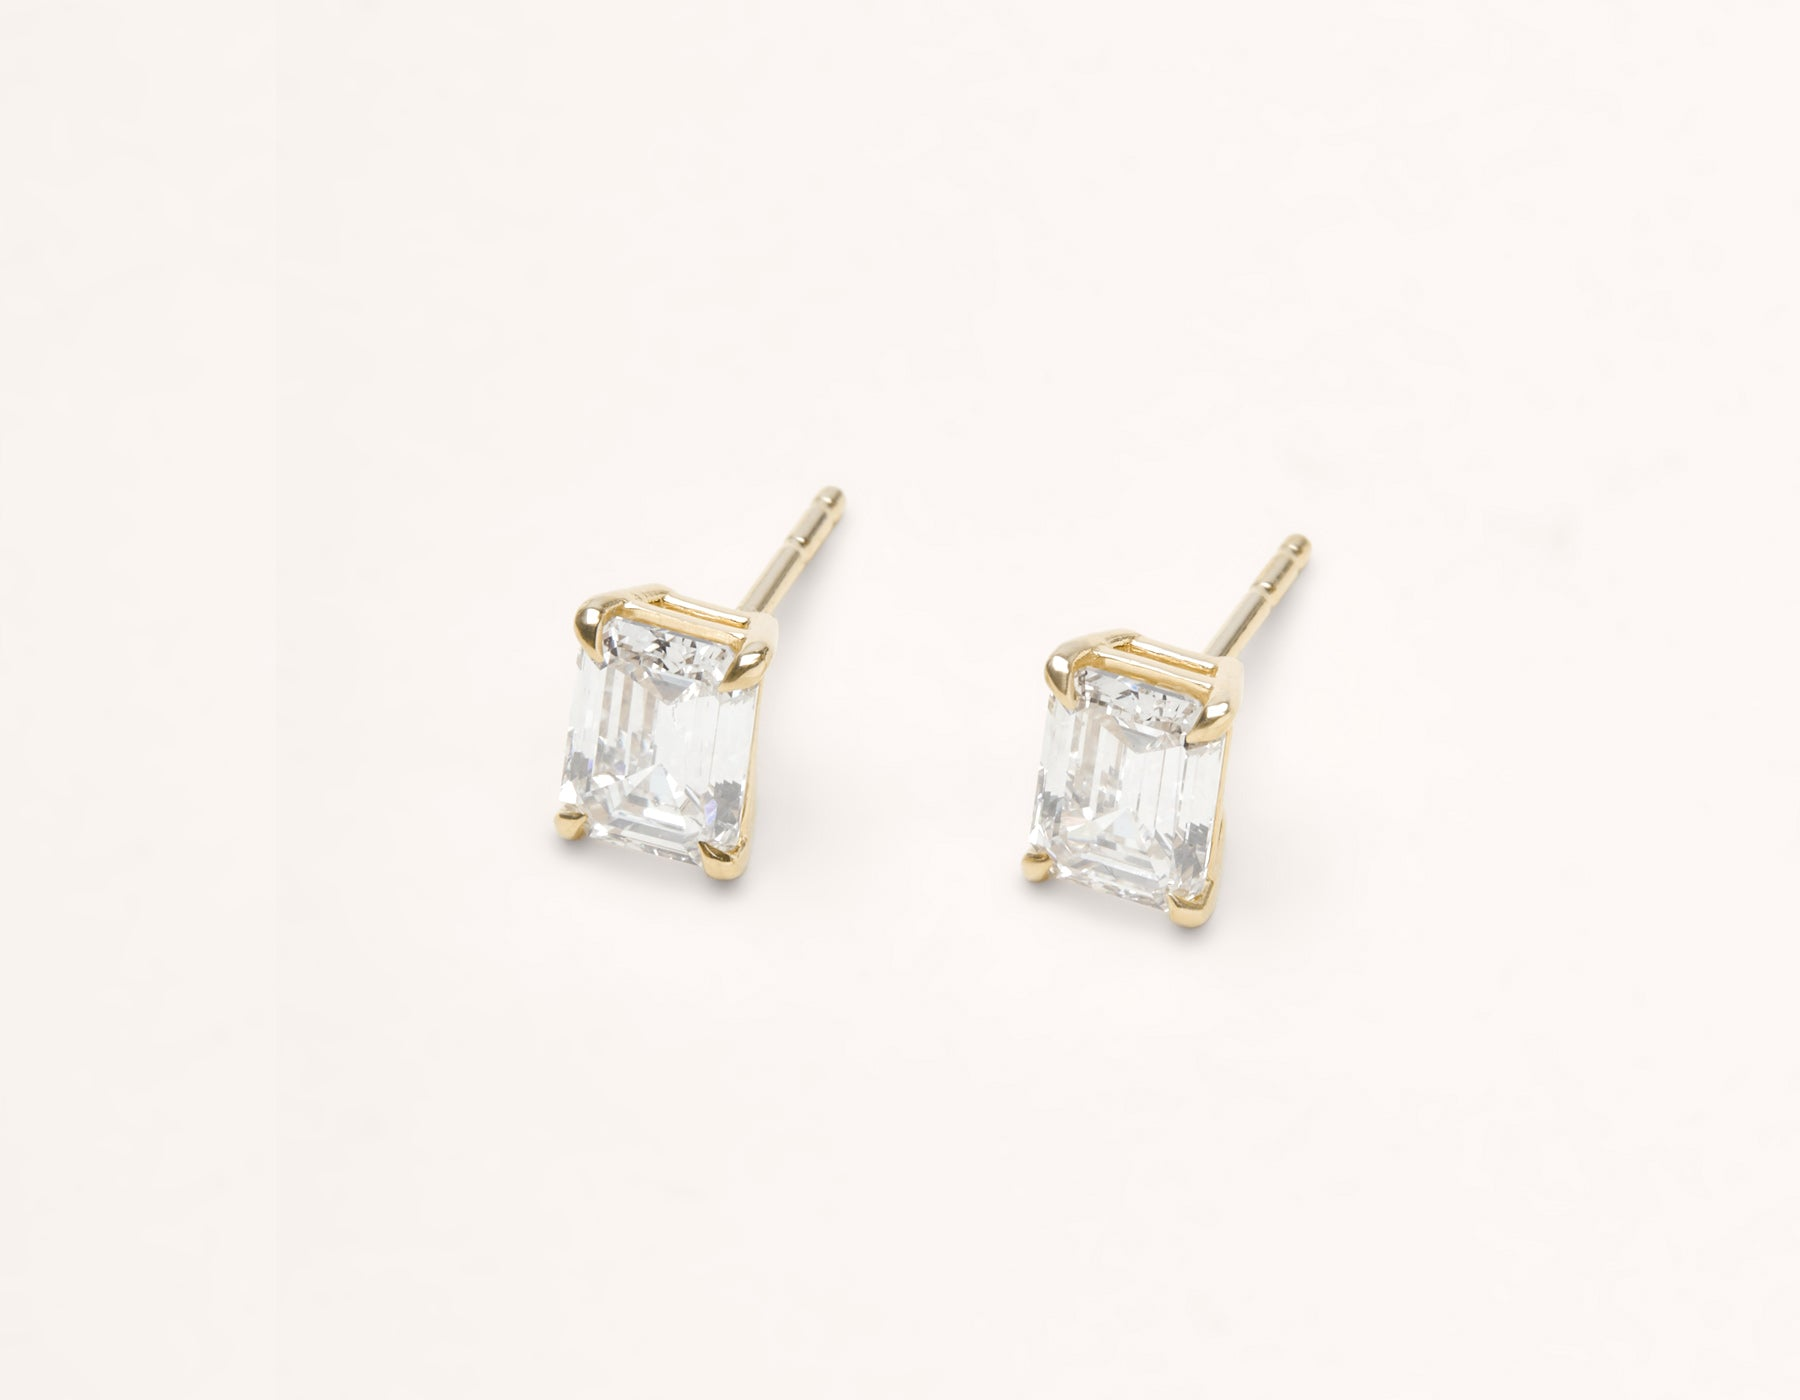 modern minimalist 18k solid gold 1 ct Emerald Studs diamond earrings by Vrai & Oro, 18K Yellow Gold